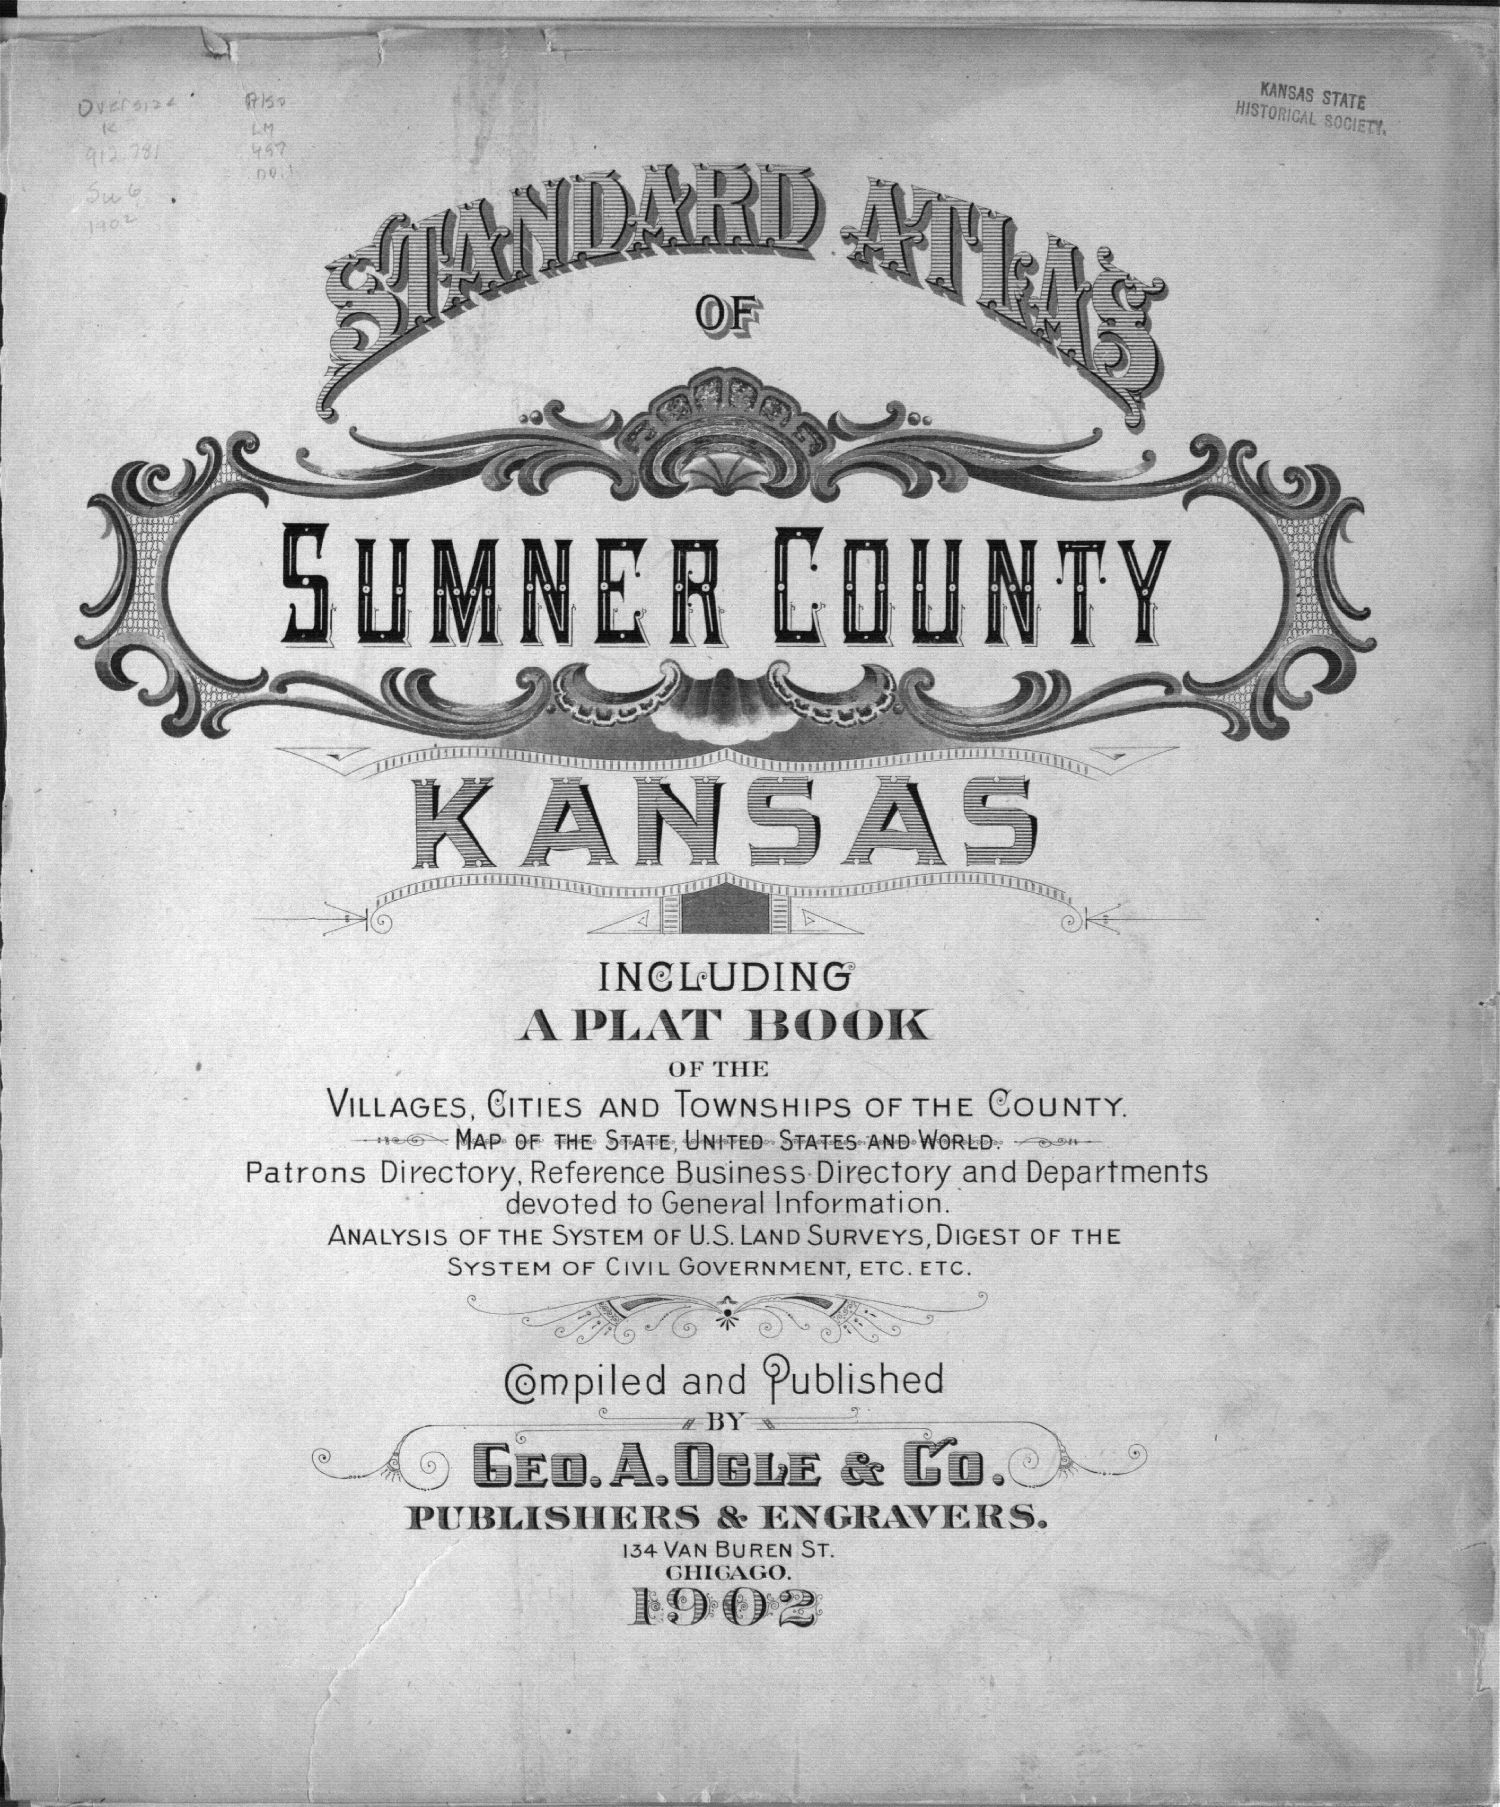 Standard atlas of Sumner County, Kansas - Title Page